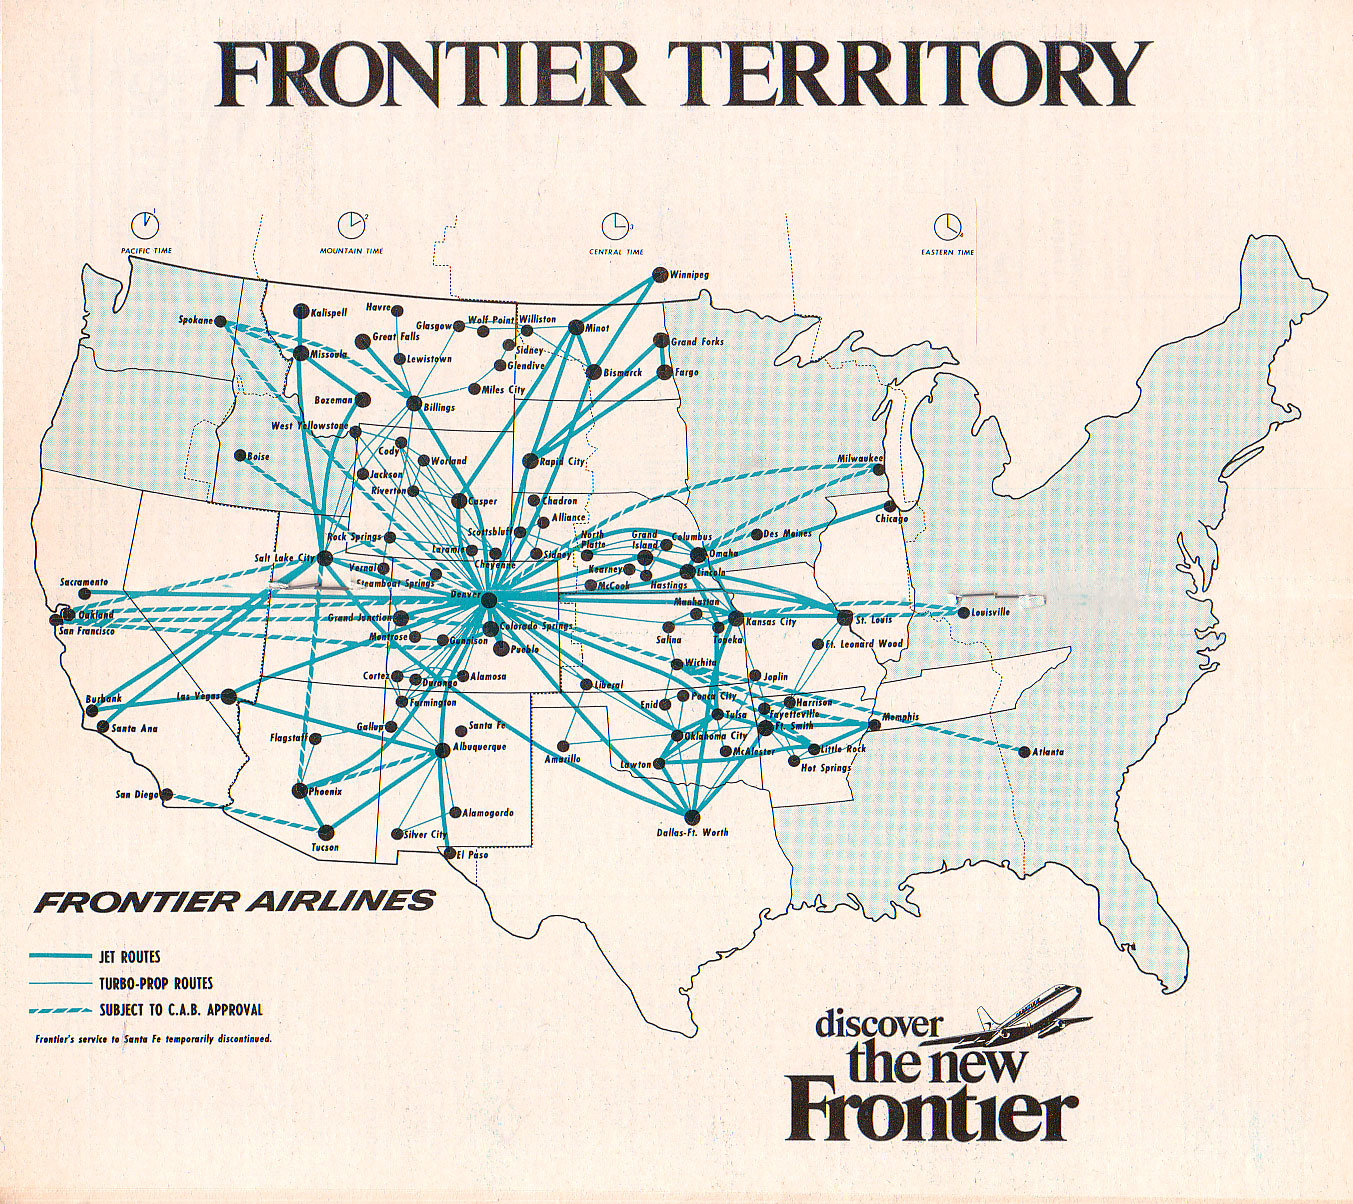 Frontier Airlines - Collector's Guide to Airline Timetables on